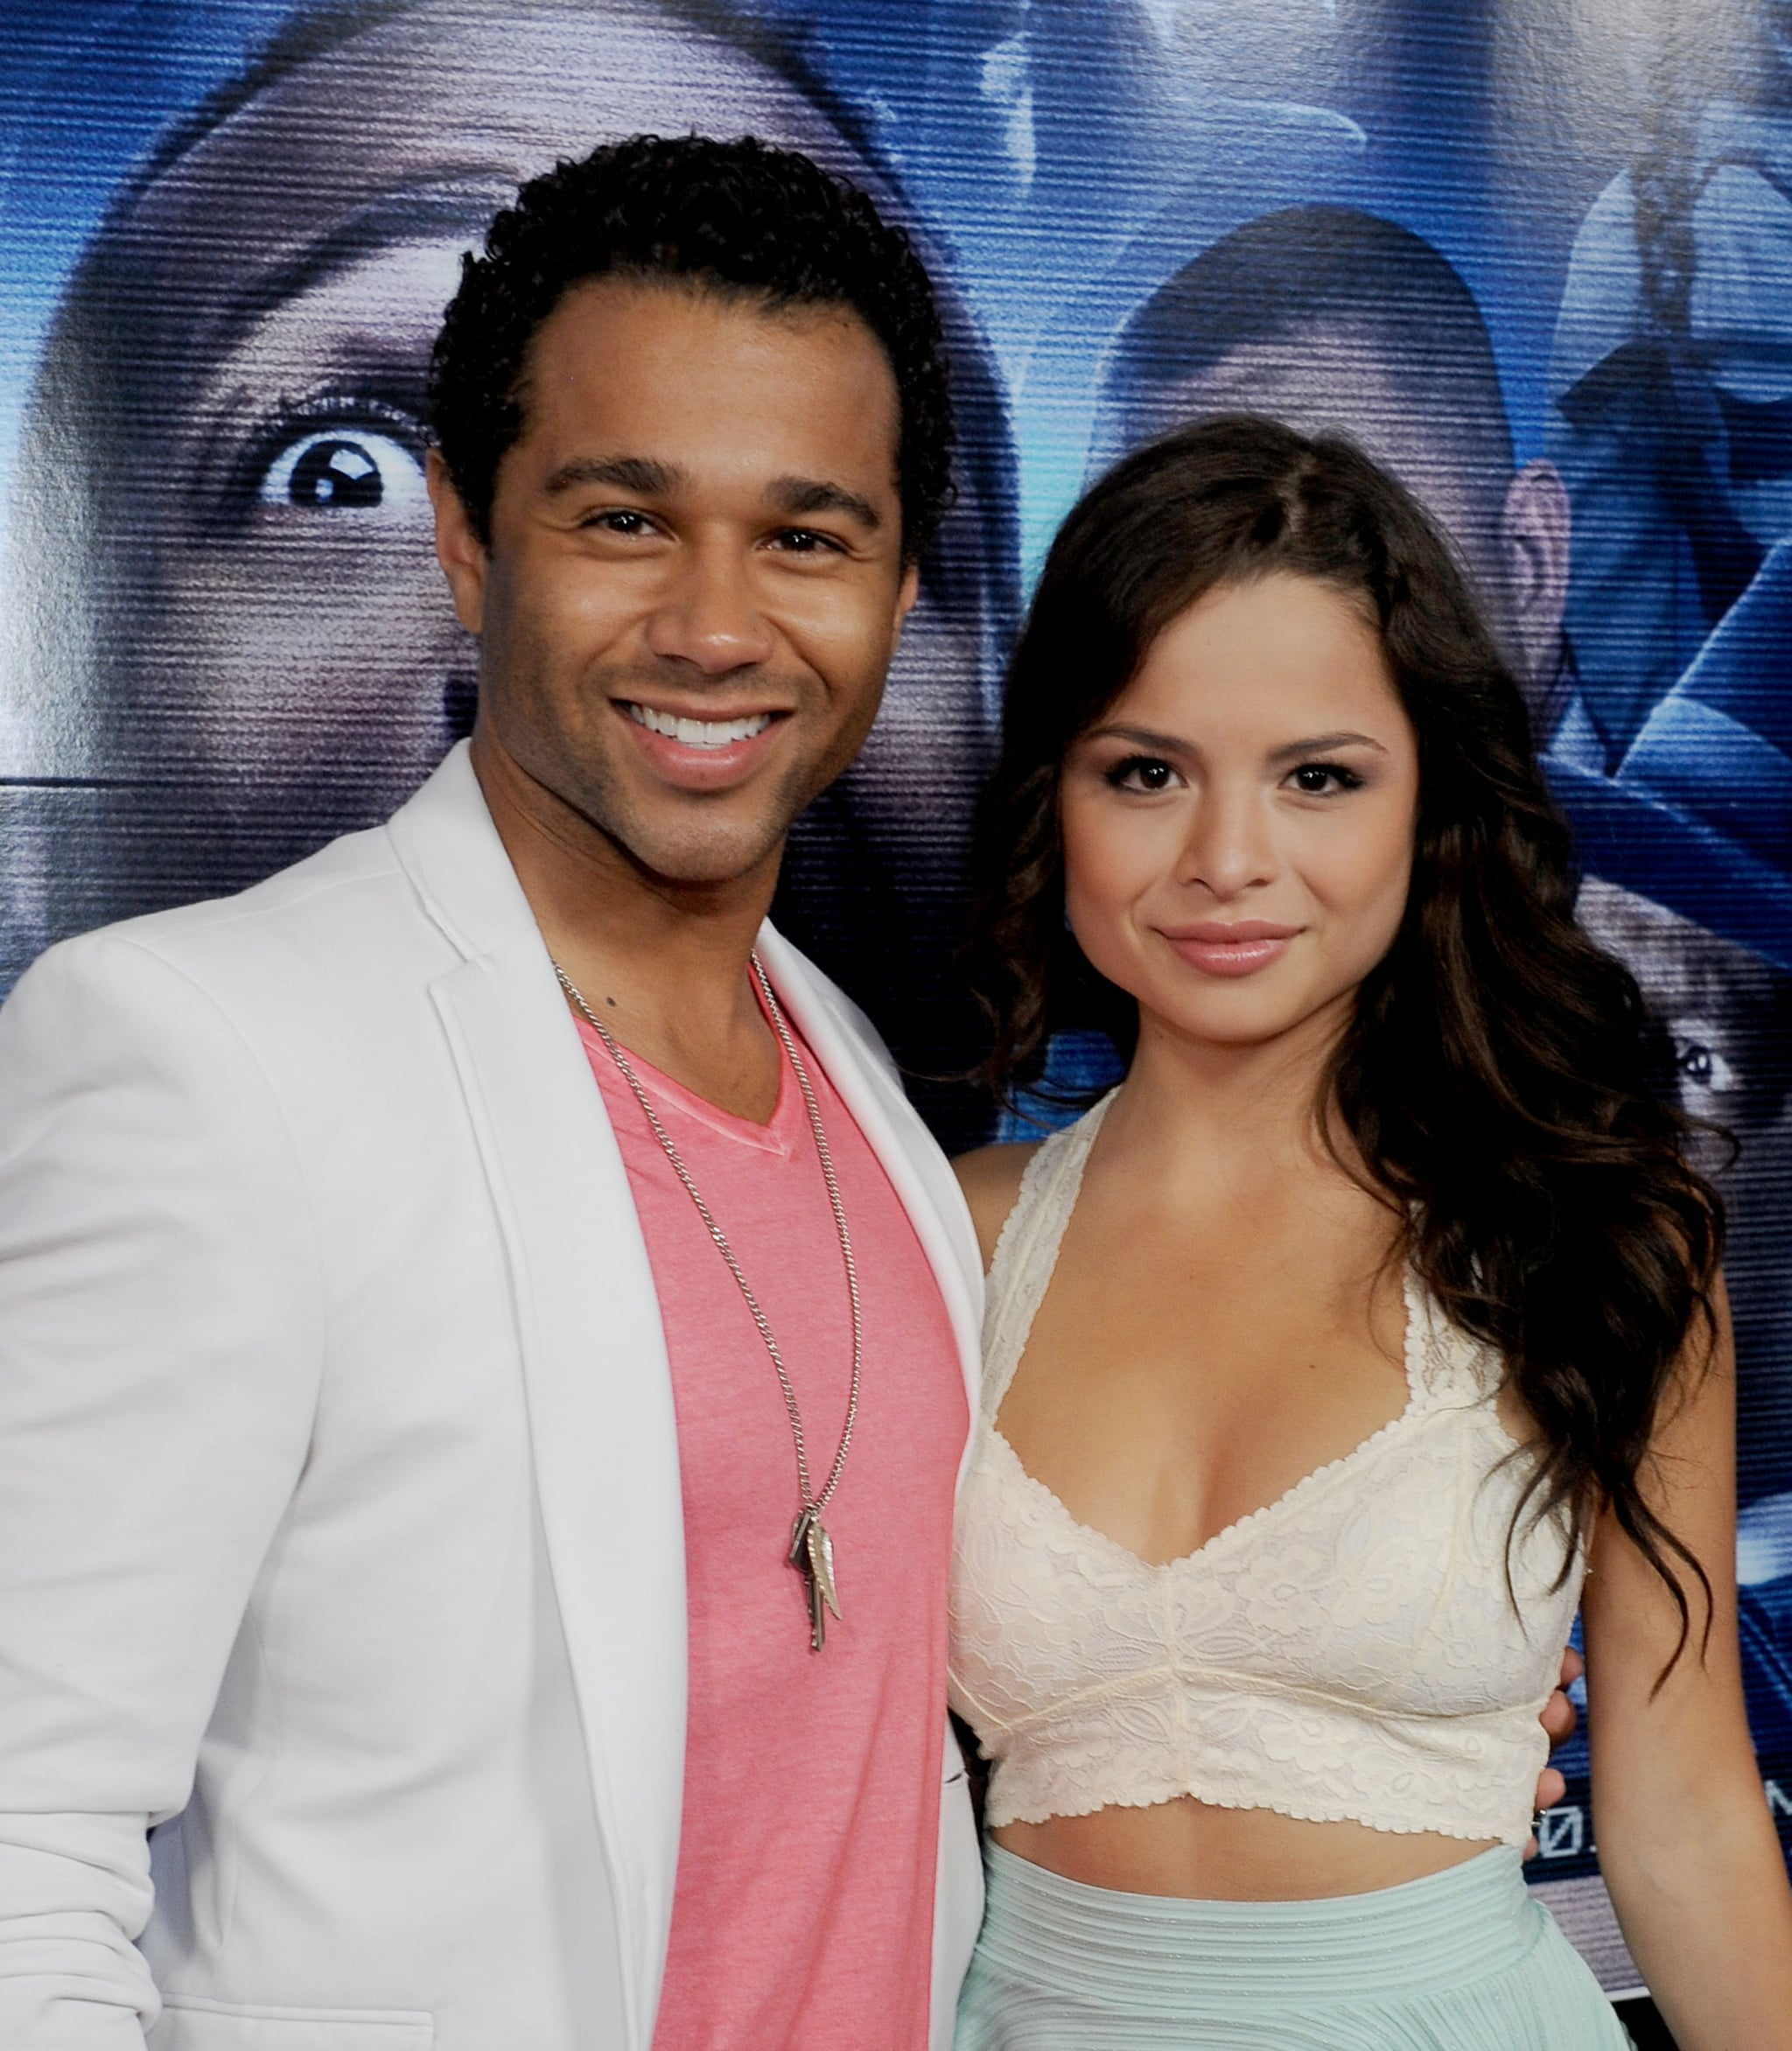 dating corbin bleu Corbin bleu reivers is an american actor, dancer, producer and singer this biography profiles his childhood, family, personal life, achievements and.